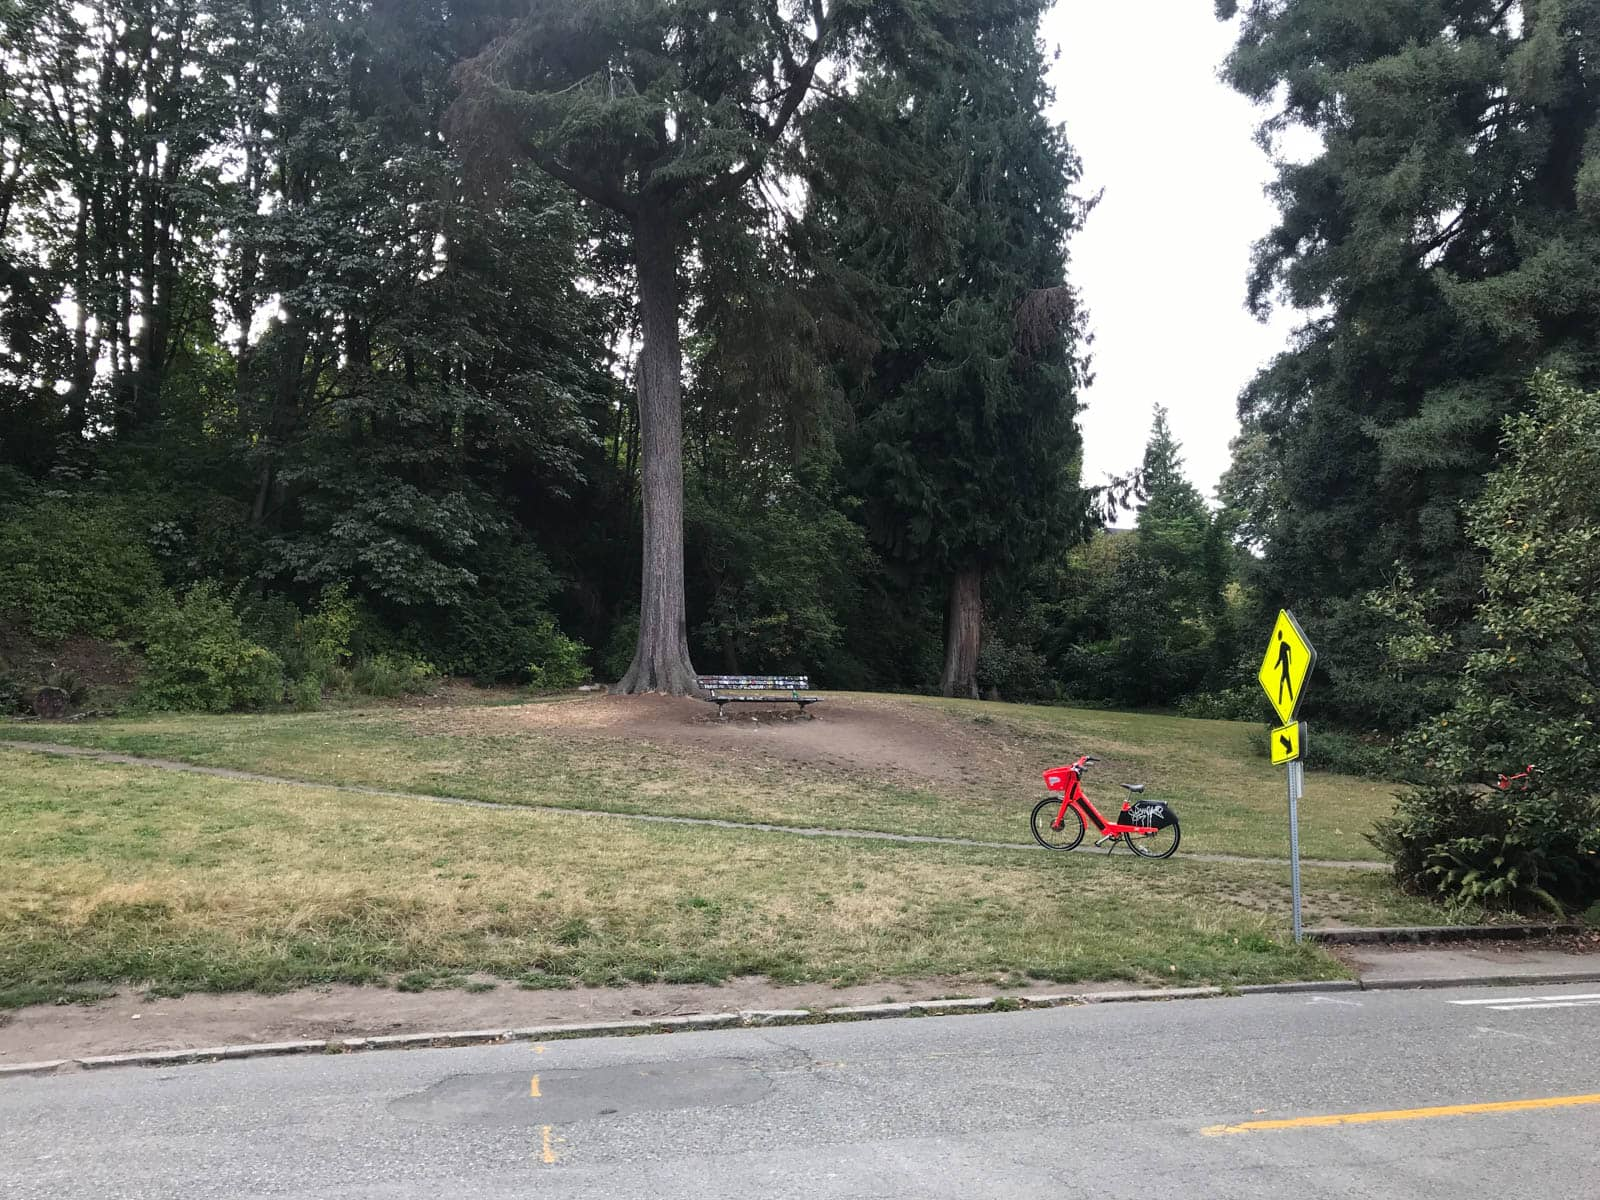 A park with open space, one big tree and a lone bench with one path across the front of it. There is a bright red bike on the path.